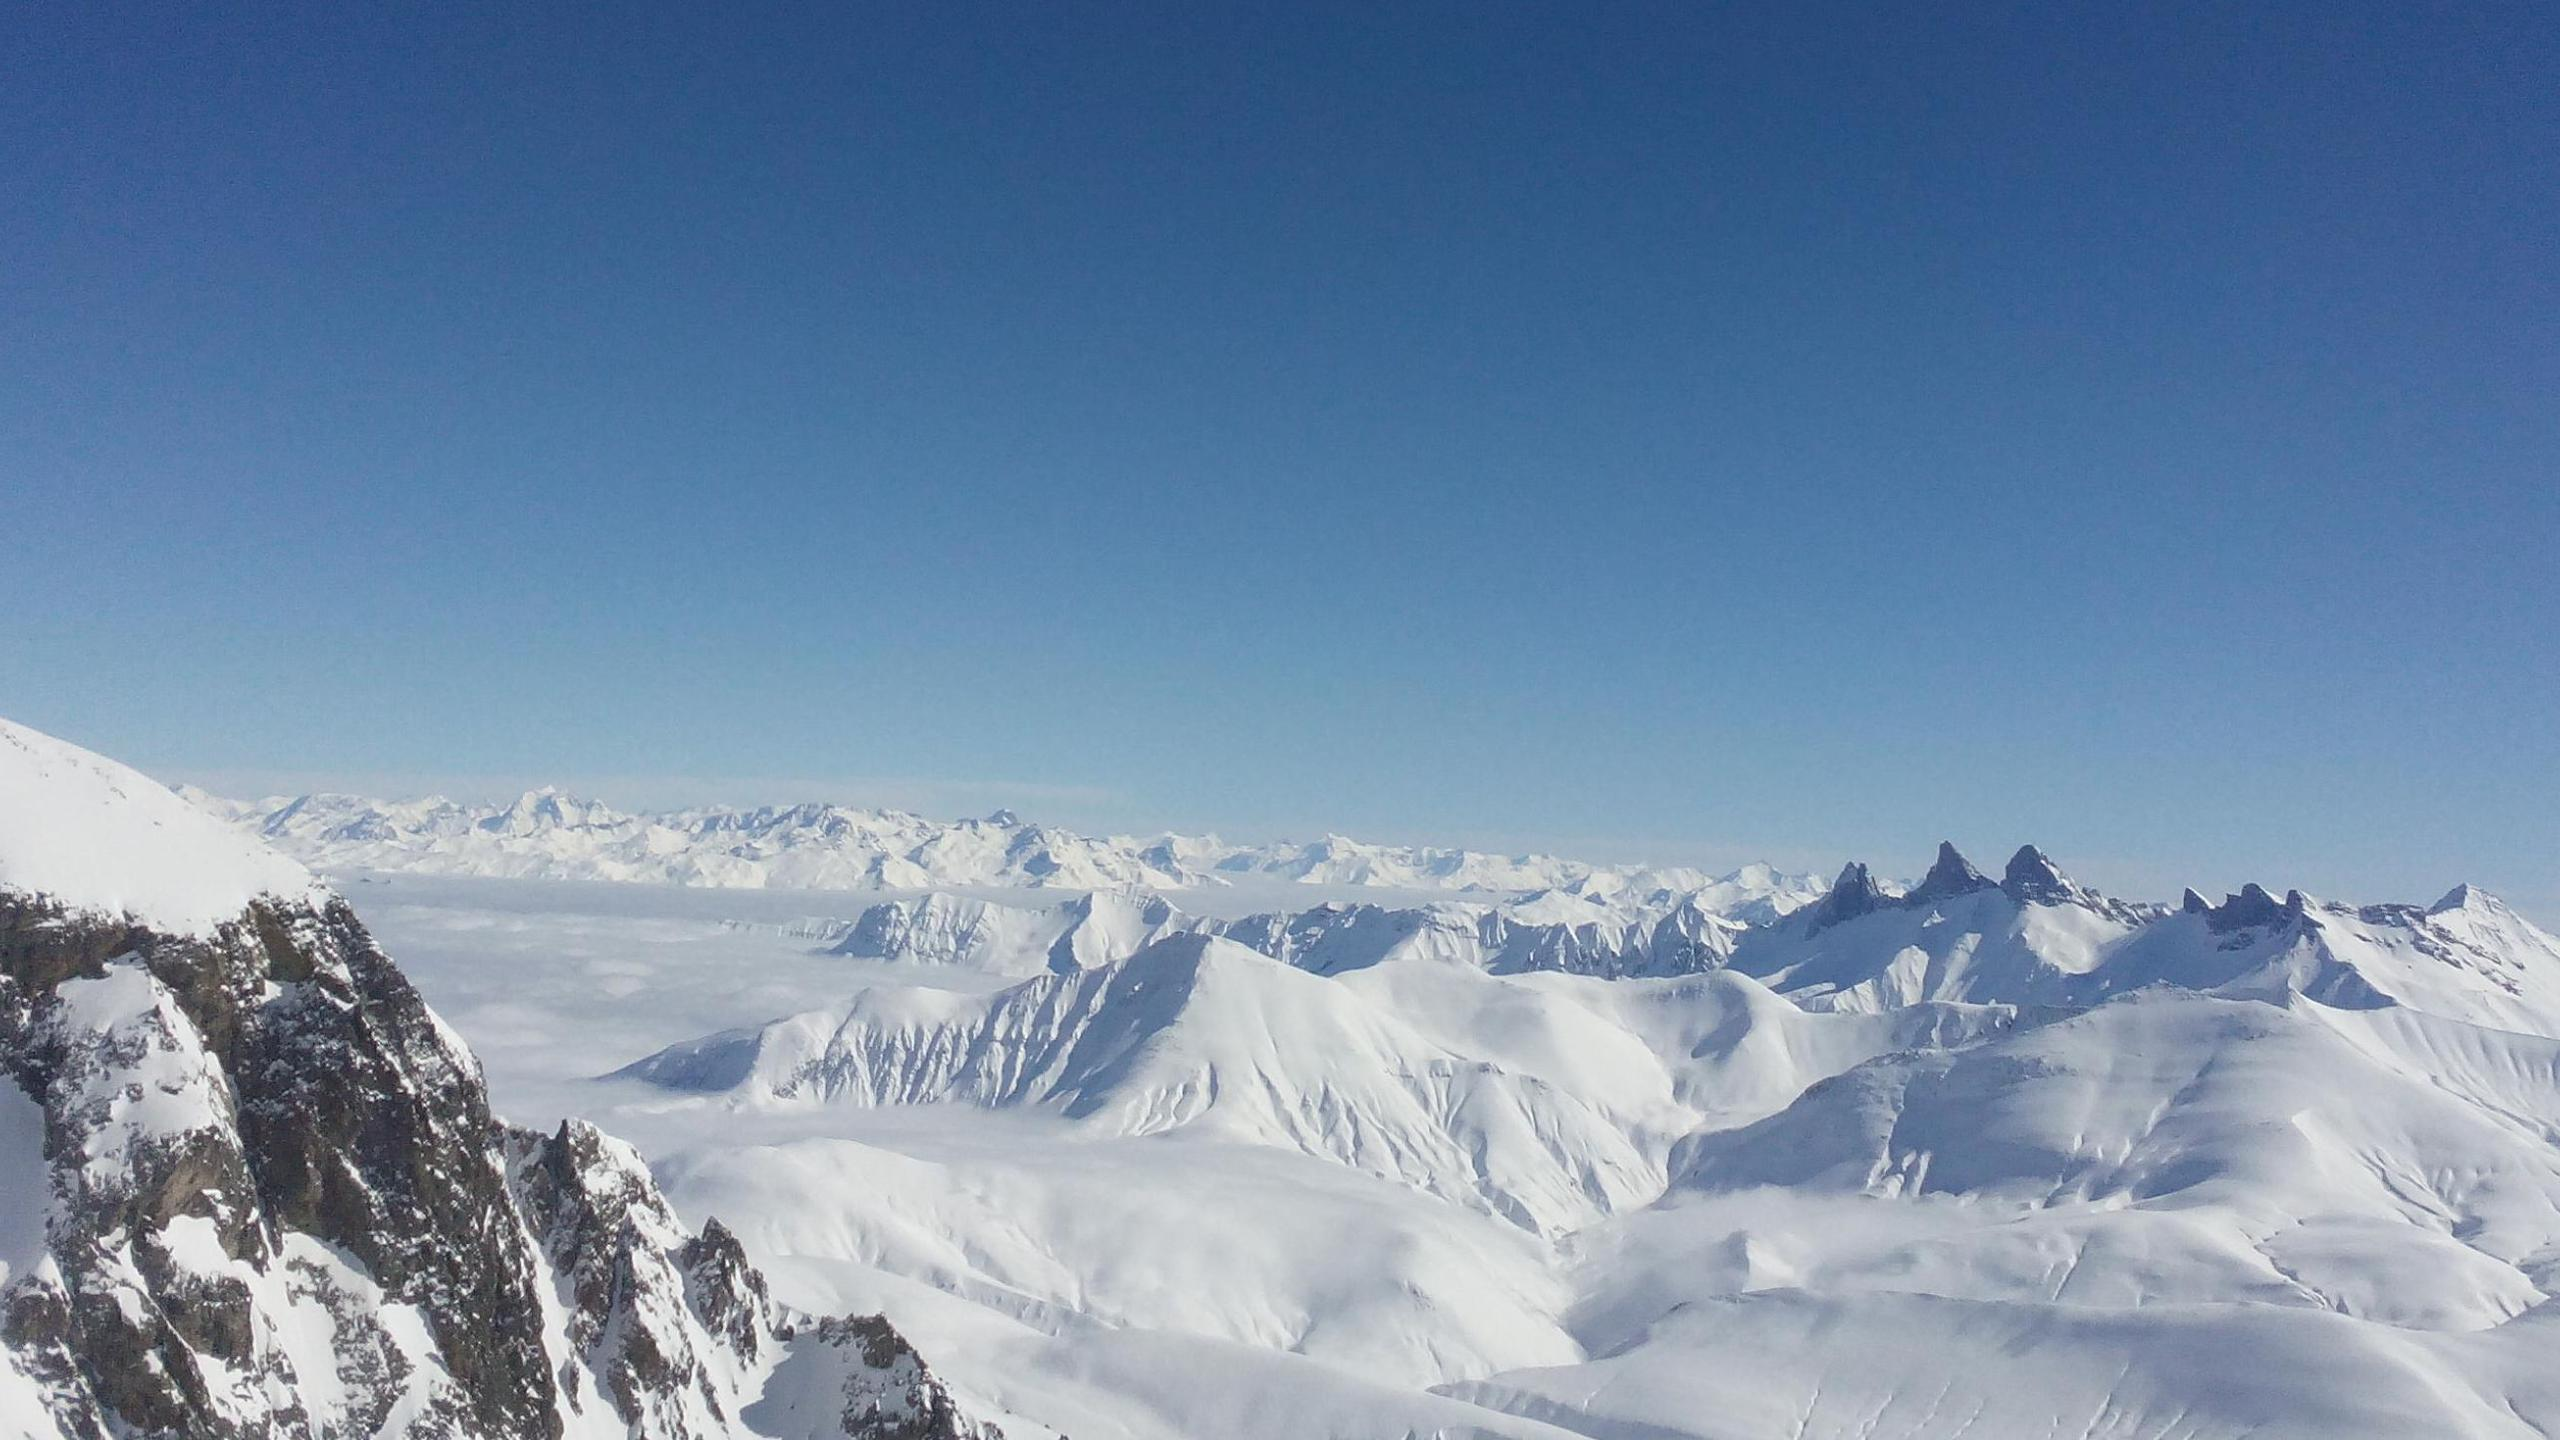 BOTPOST [BOTPOST] View from Pic Blanc Alpe dHuez France iimgur 2560x1440